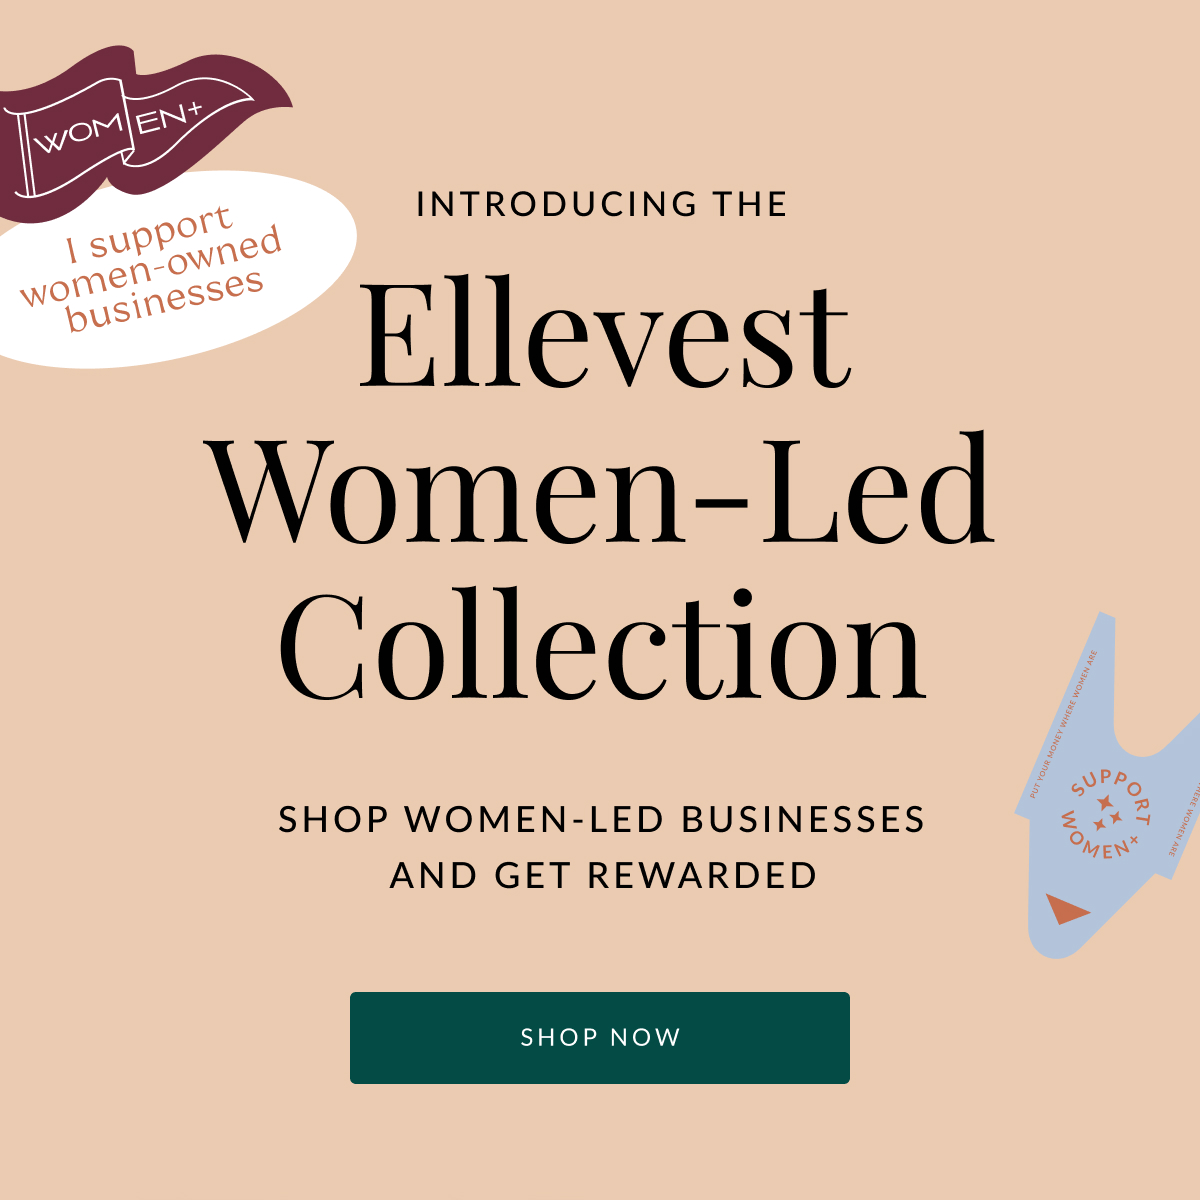 """Graphic stickers that read """"Women+, I support women-owned business, and support women."""", a headline that reads """"Introducing the Ellevest Women-Lead Collection"""", and text that reads """"Shop women-led business and get rewarded"""""""